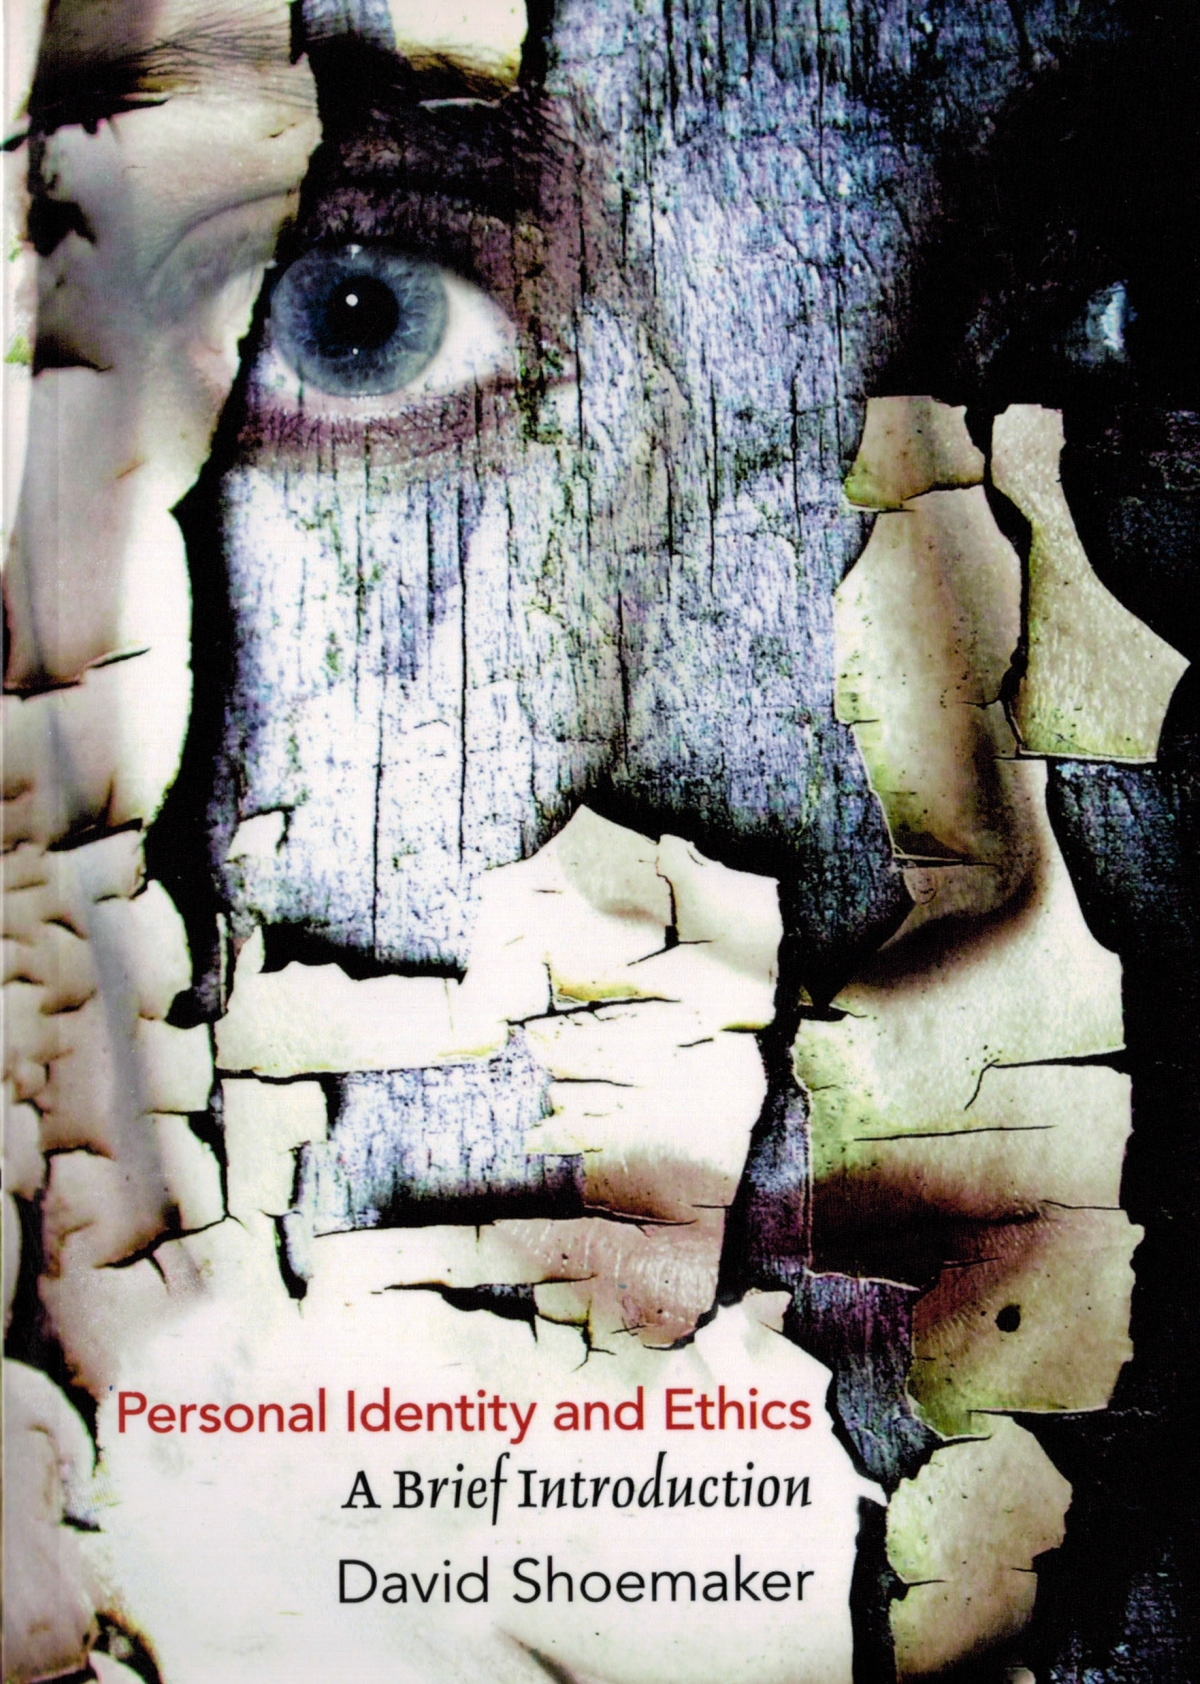 environmental ethics broadview press personal identity and ethics